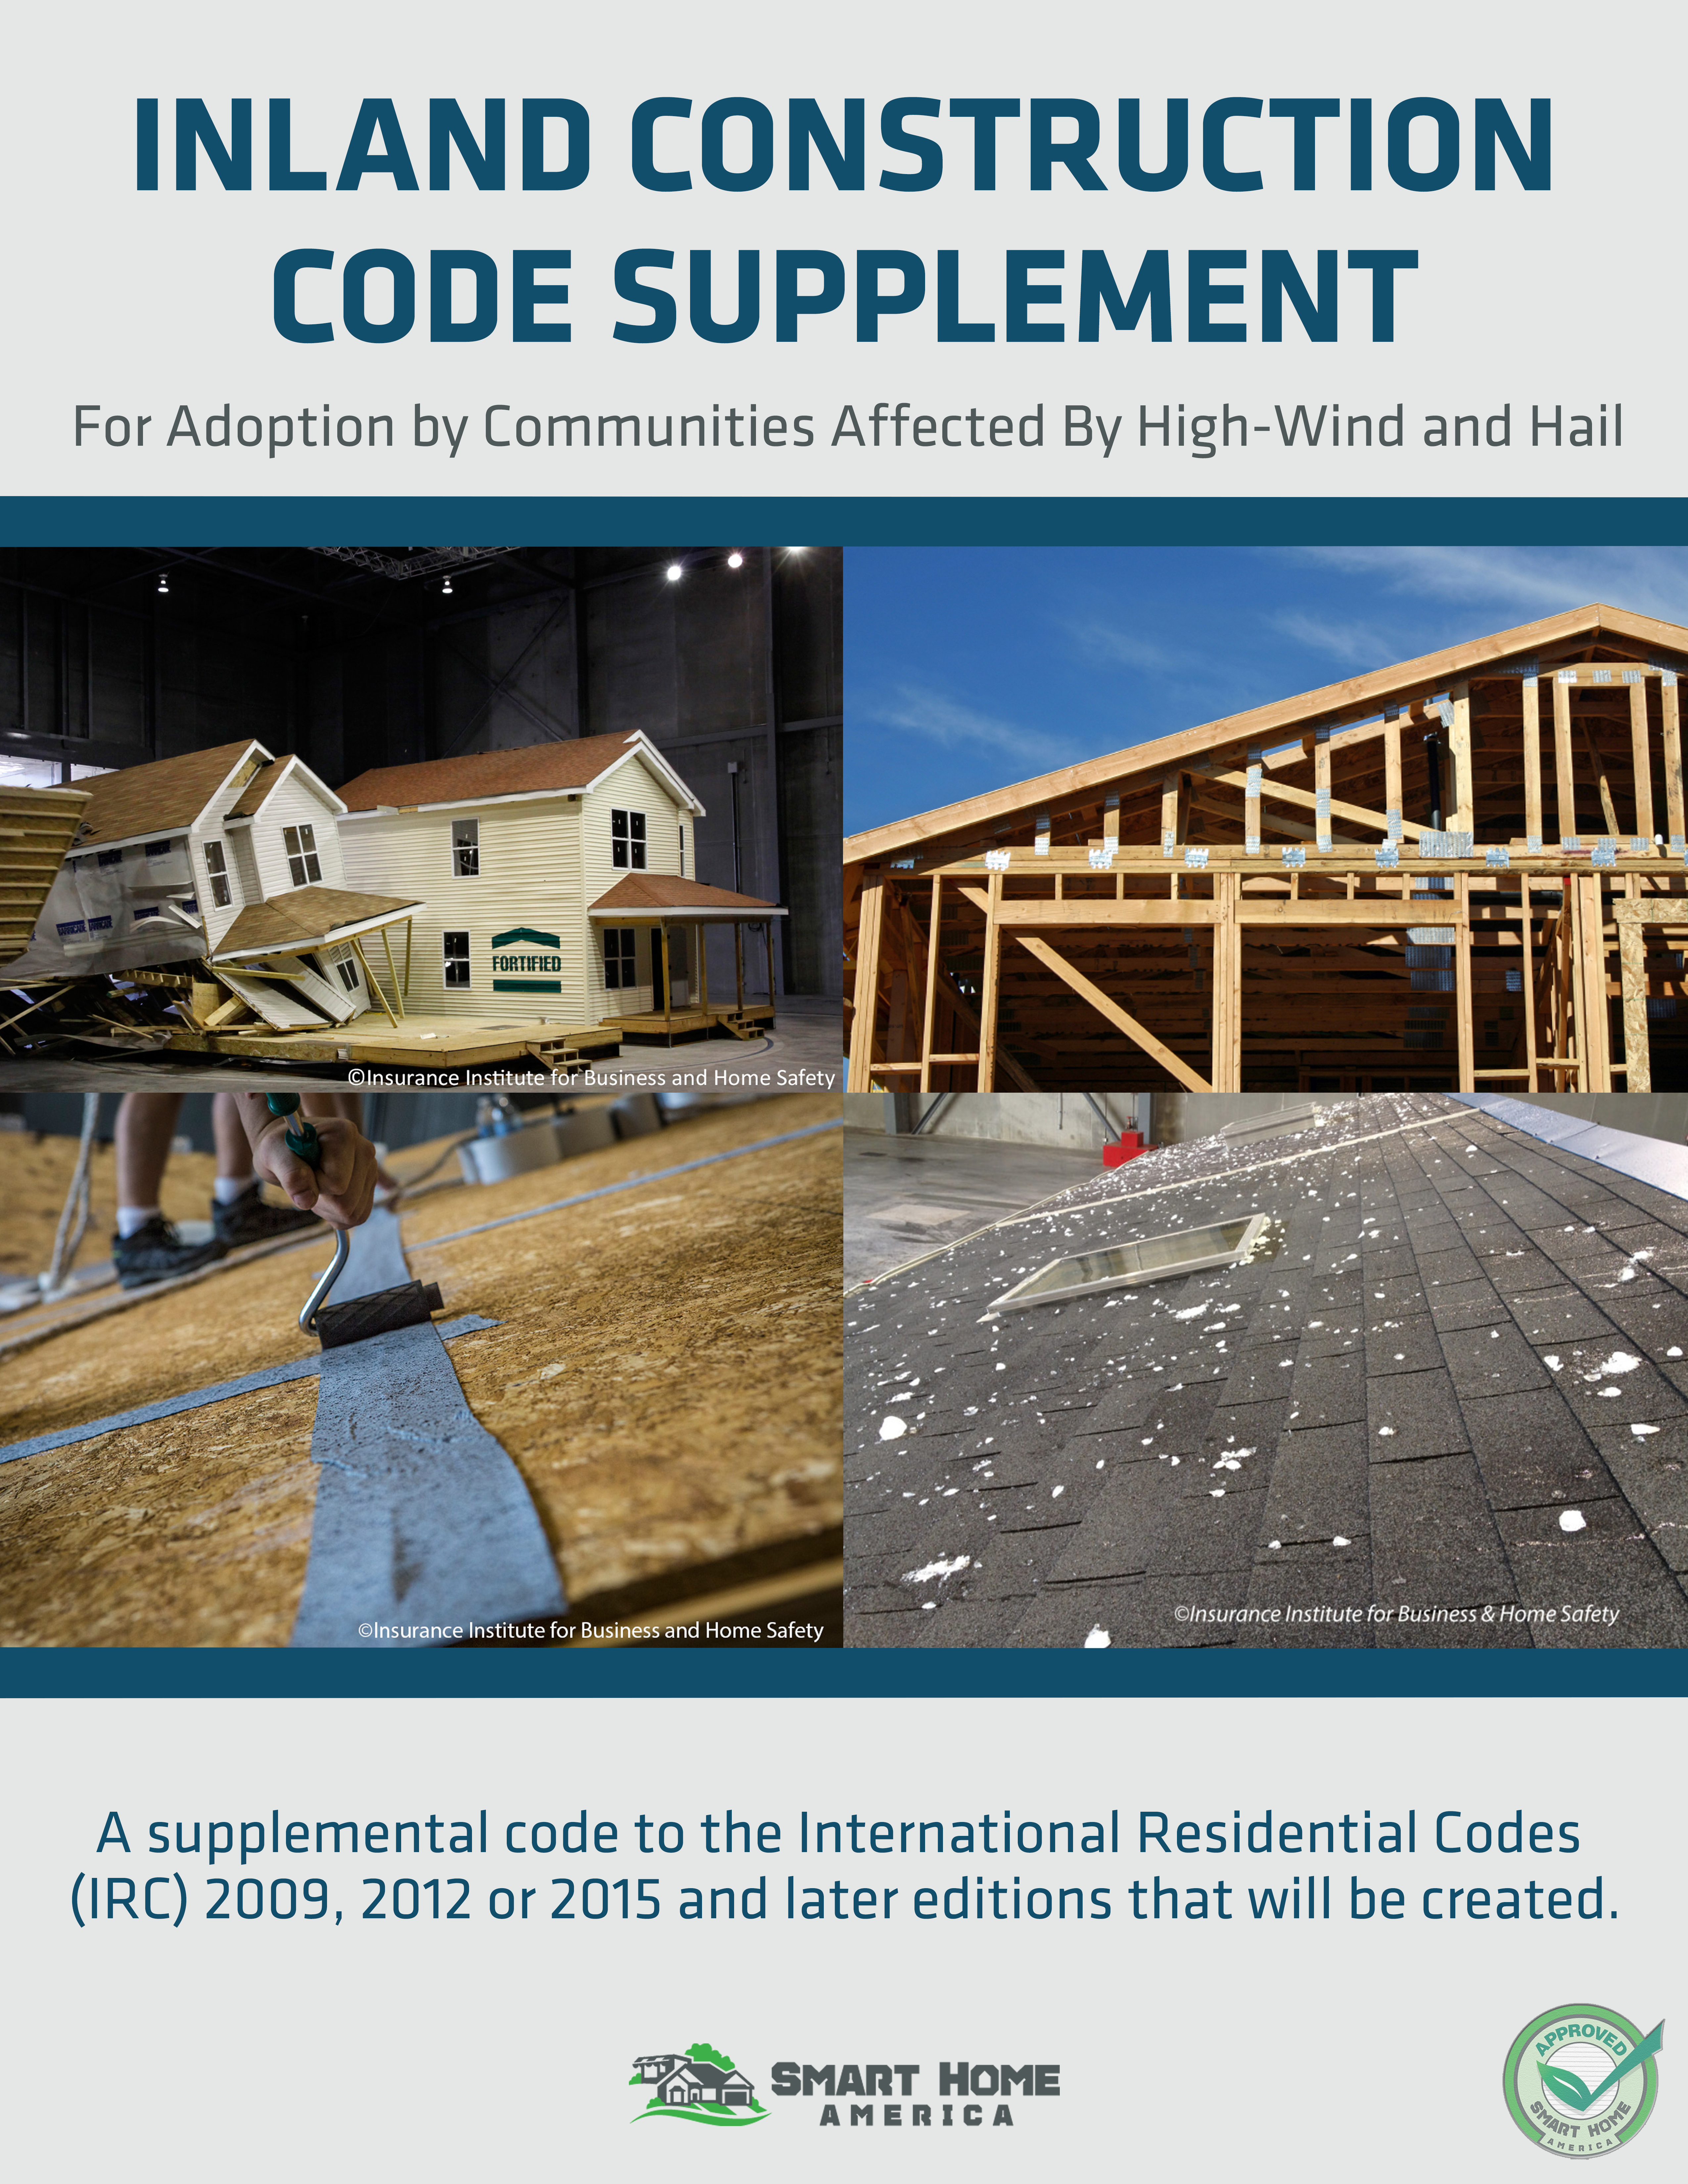 Inland Code Supplement Cover Image New web